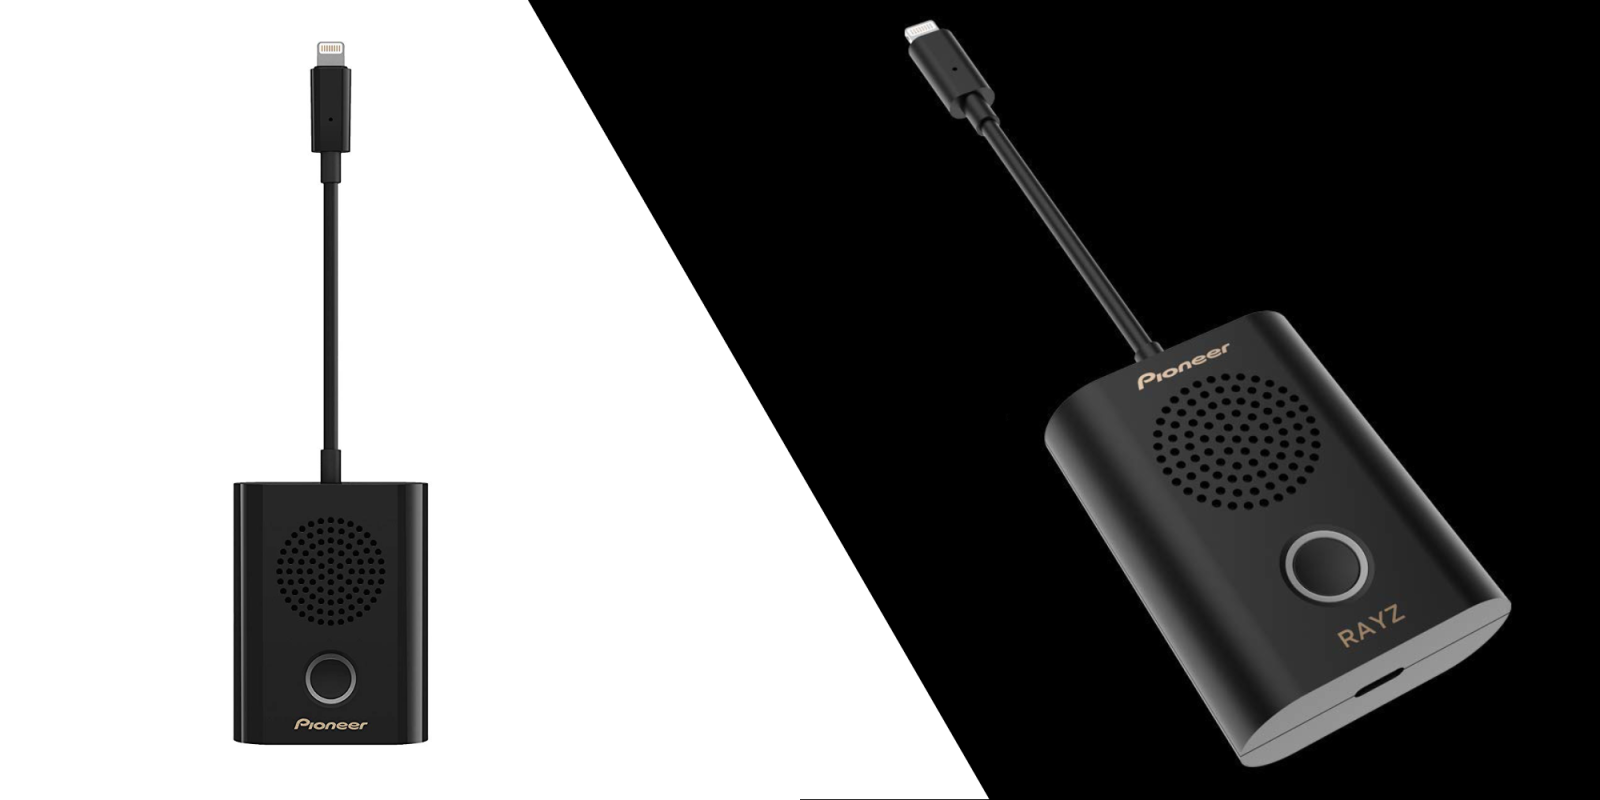 Pioneer's Rayz Rally Lightning Microphone drops to new Amazon low at $64 shipped (Reg. $100)